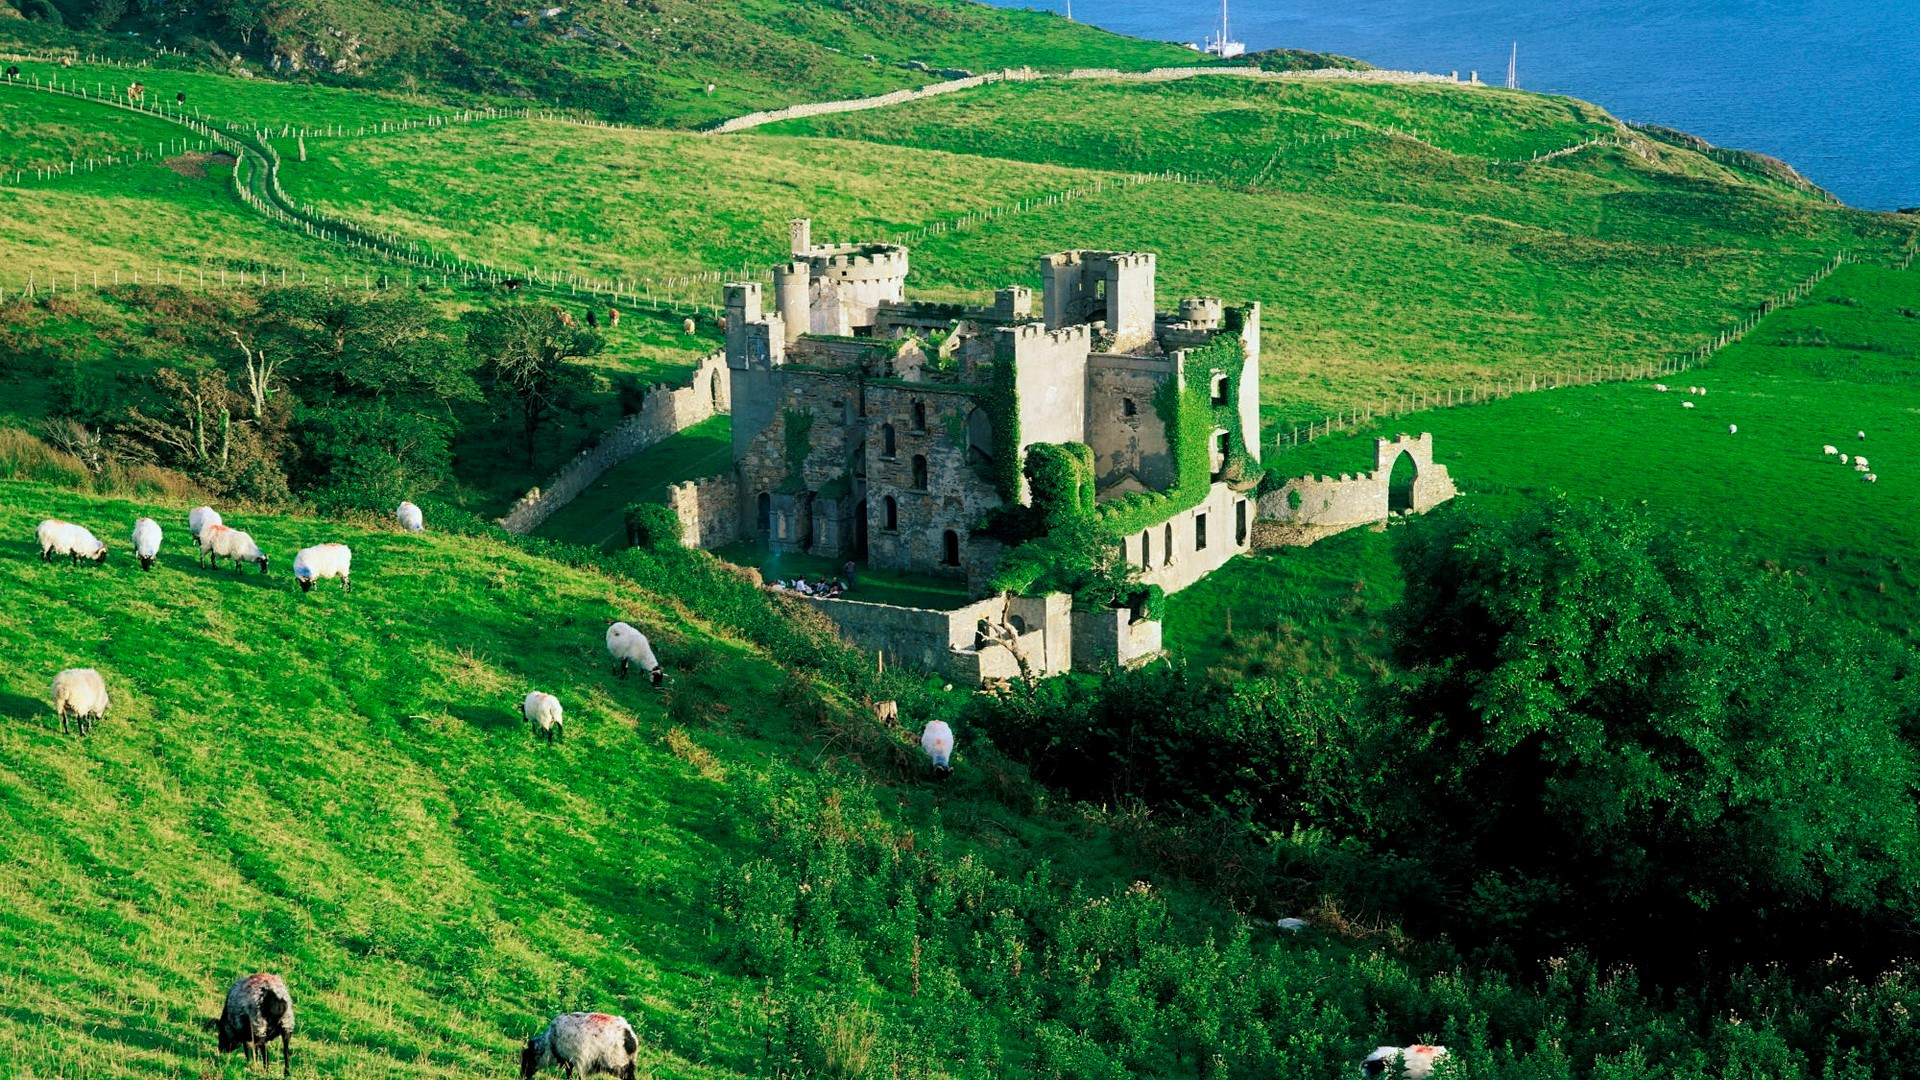 Clifden Castle Ireland Wallpapers HD Wallpapers 1920x1080